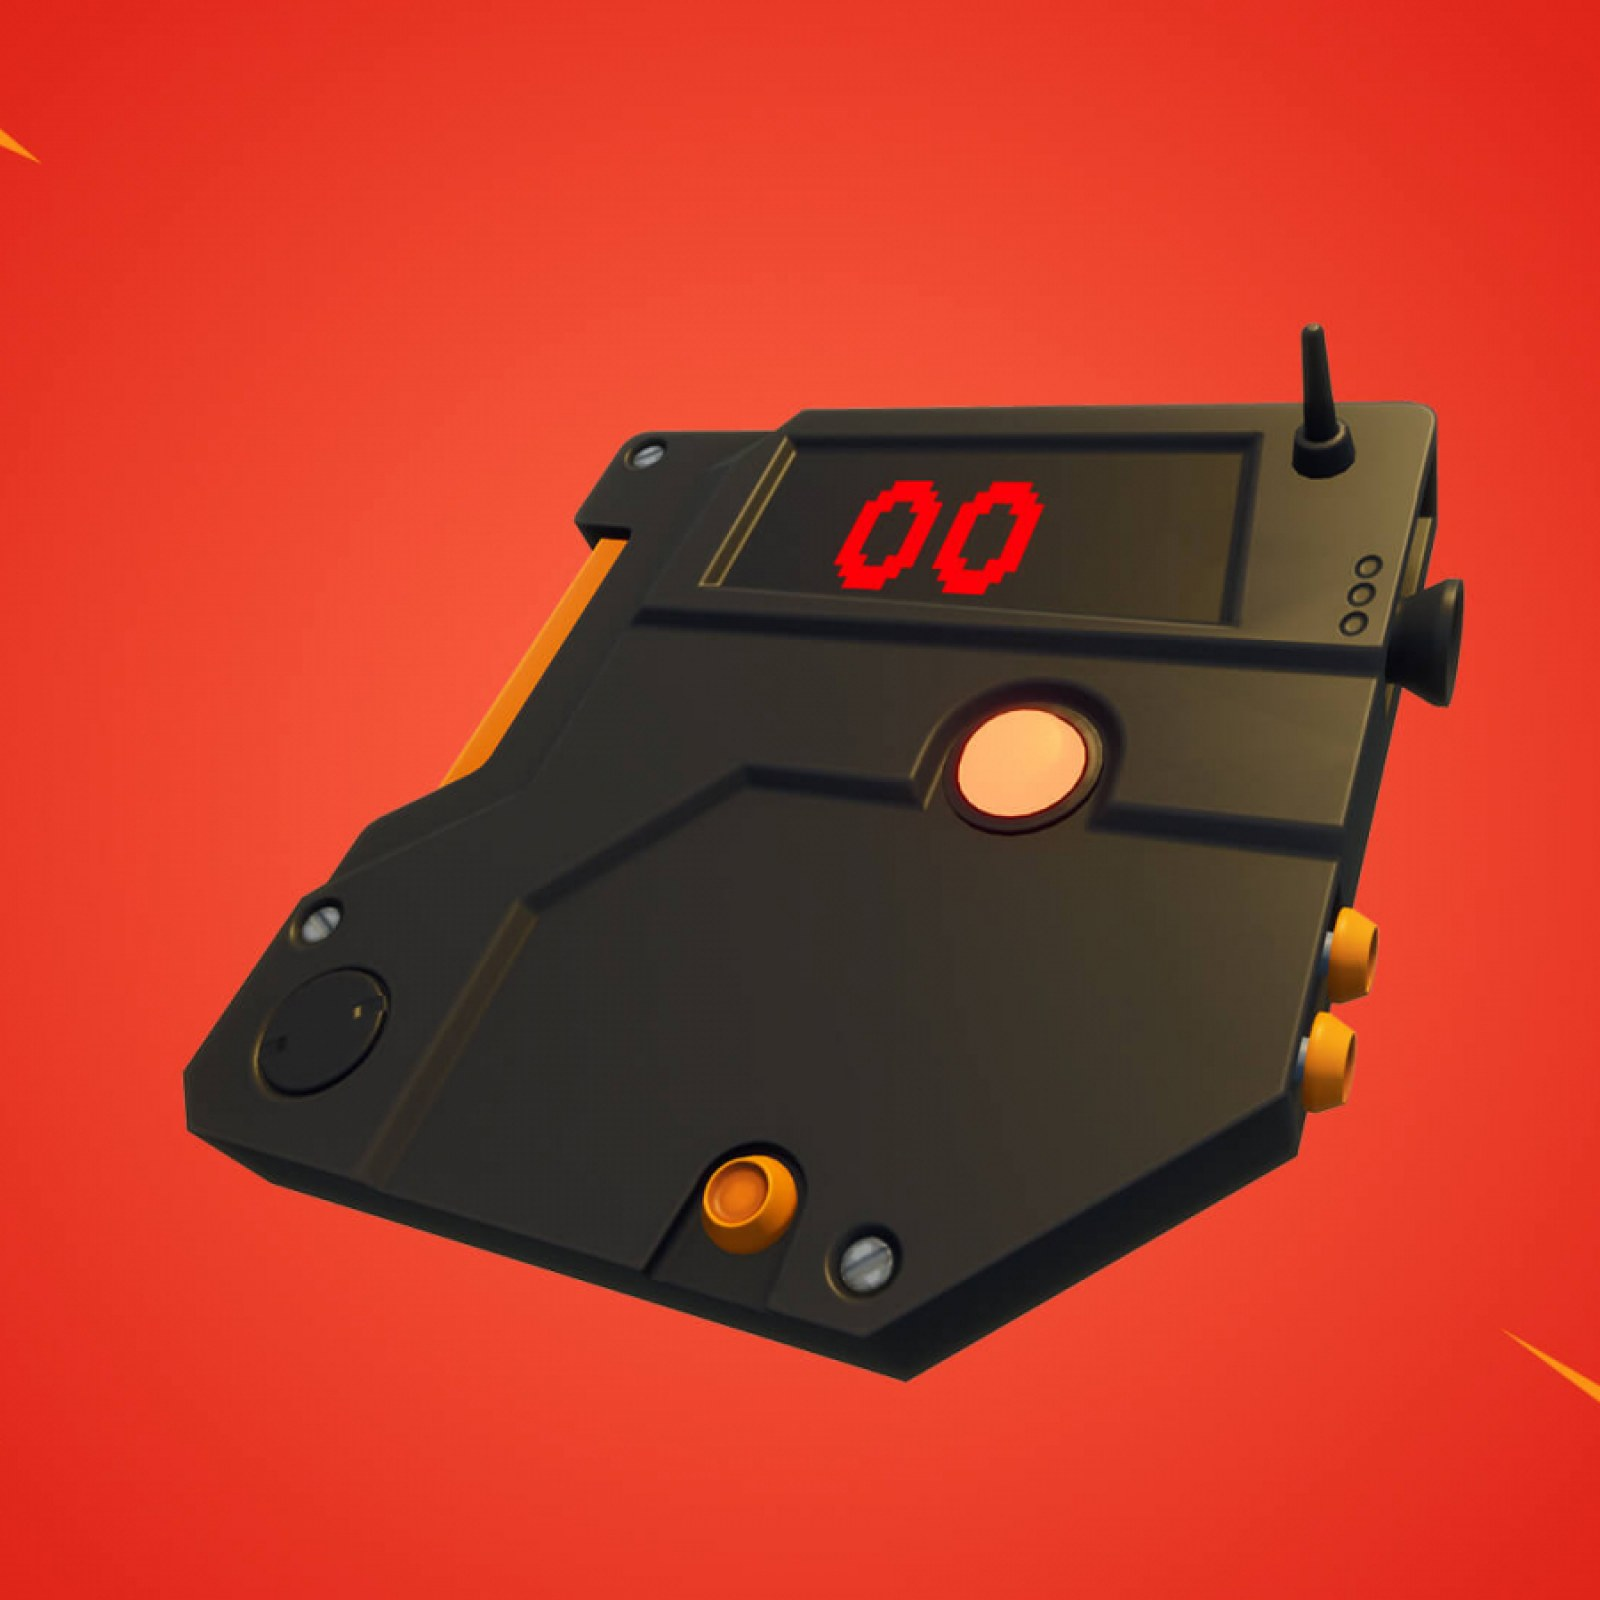 Fortnite' Update 9 20 Adds Storm Flip & Vaults Hunting Rifle - Patch